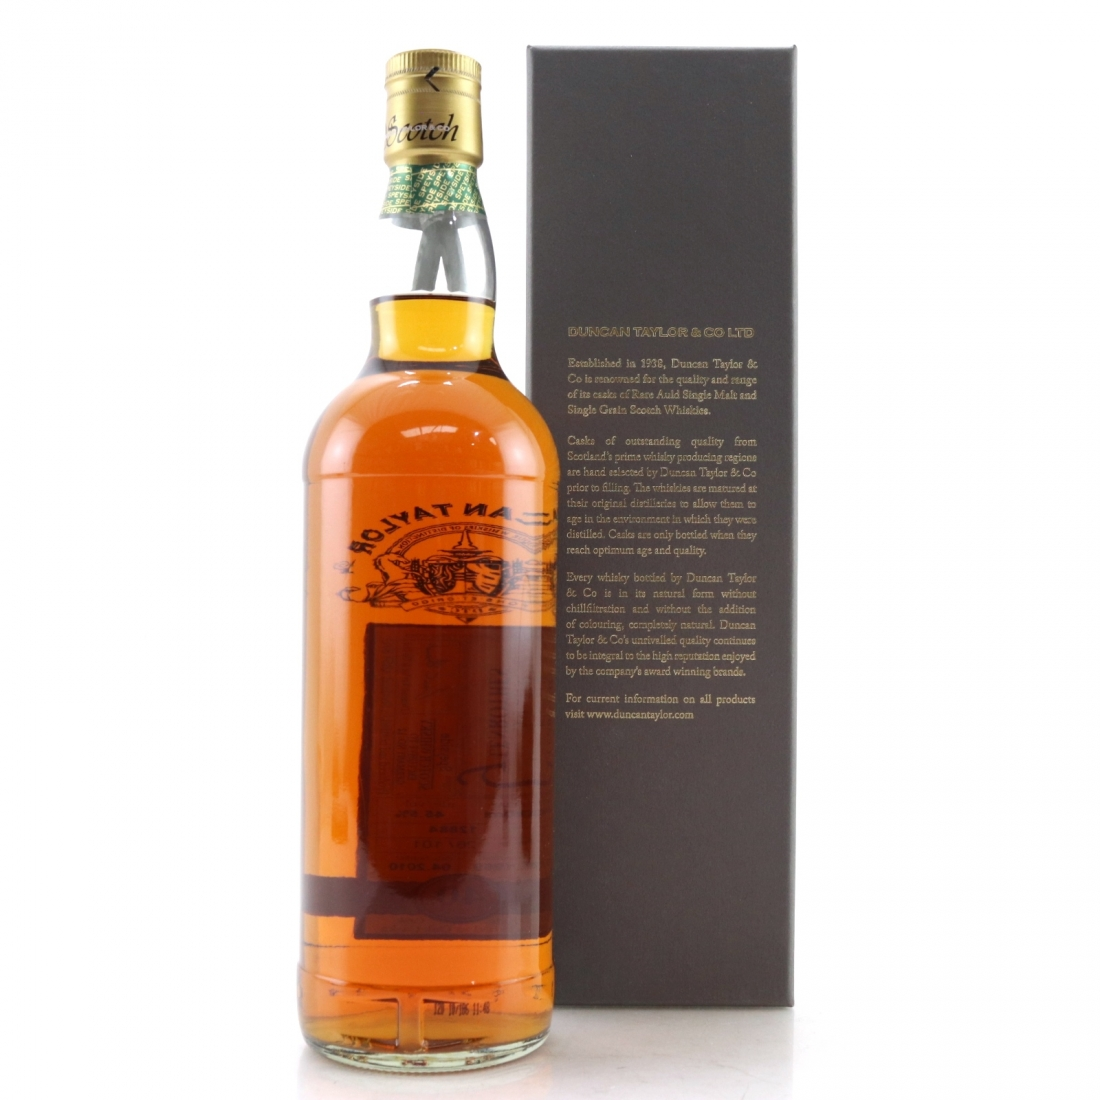 Glenrothes 1969 Duncan Taylor 40 Year Old